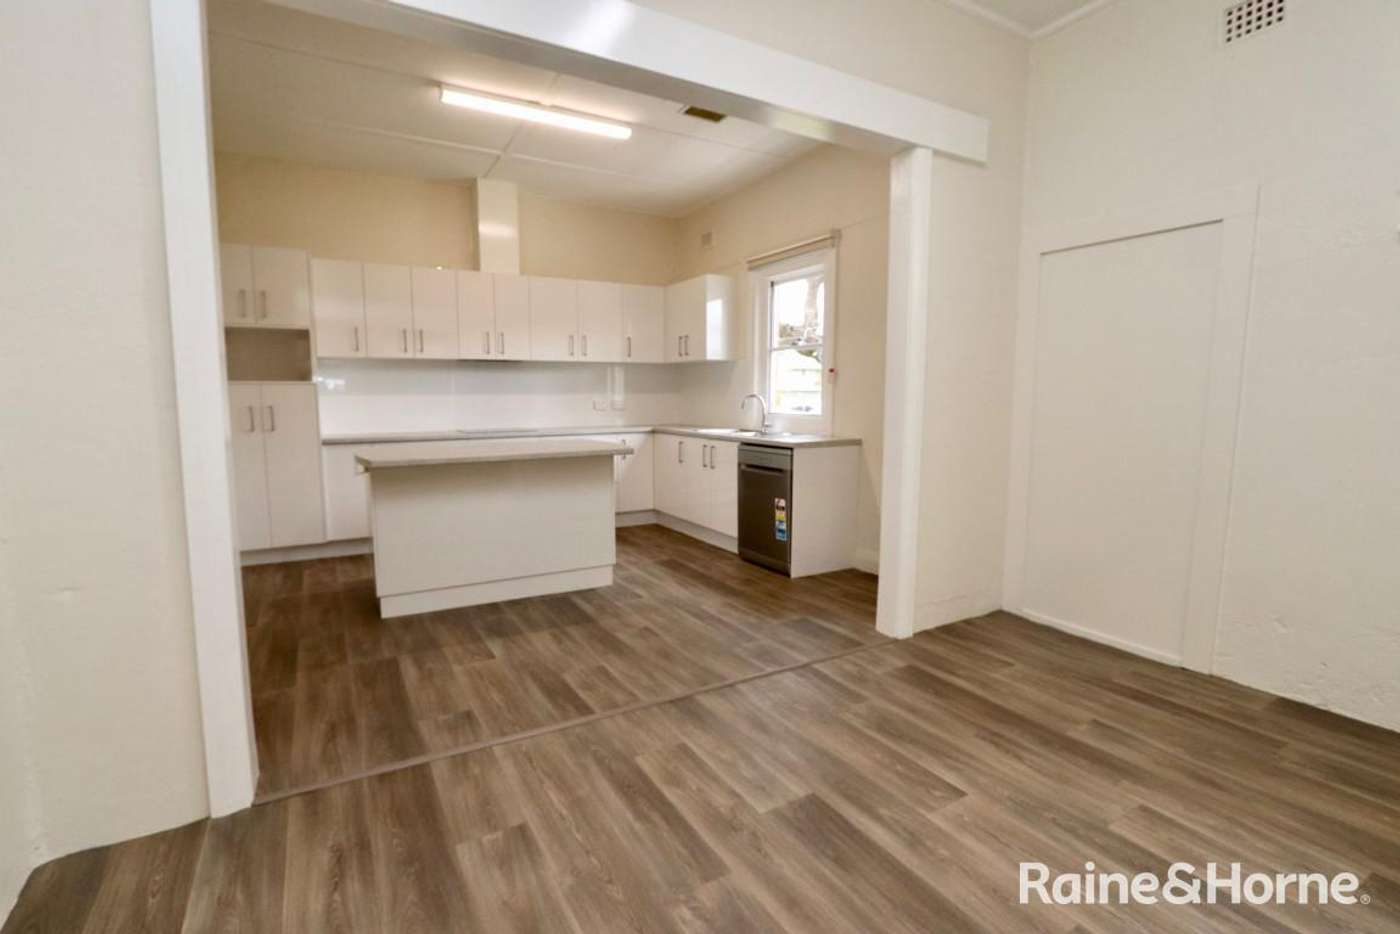 Main view of Homely house listing, 180 Stewart Street, Bathurst NSW 2795